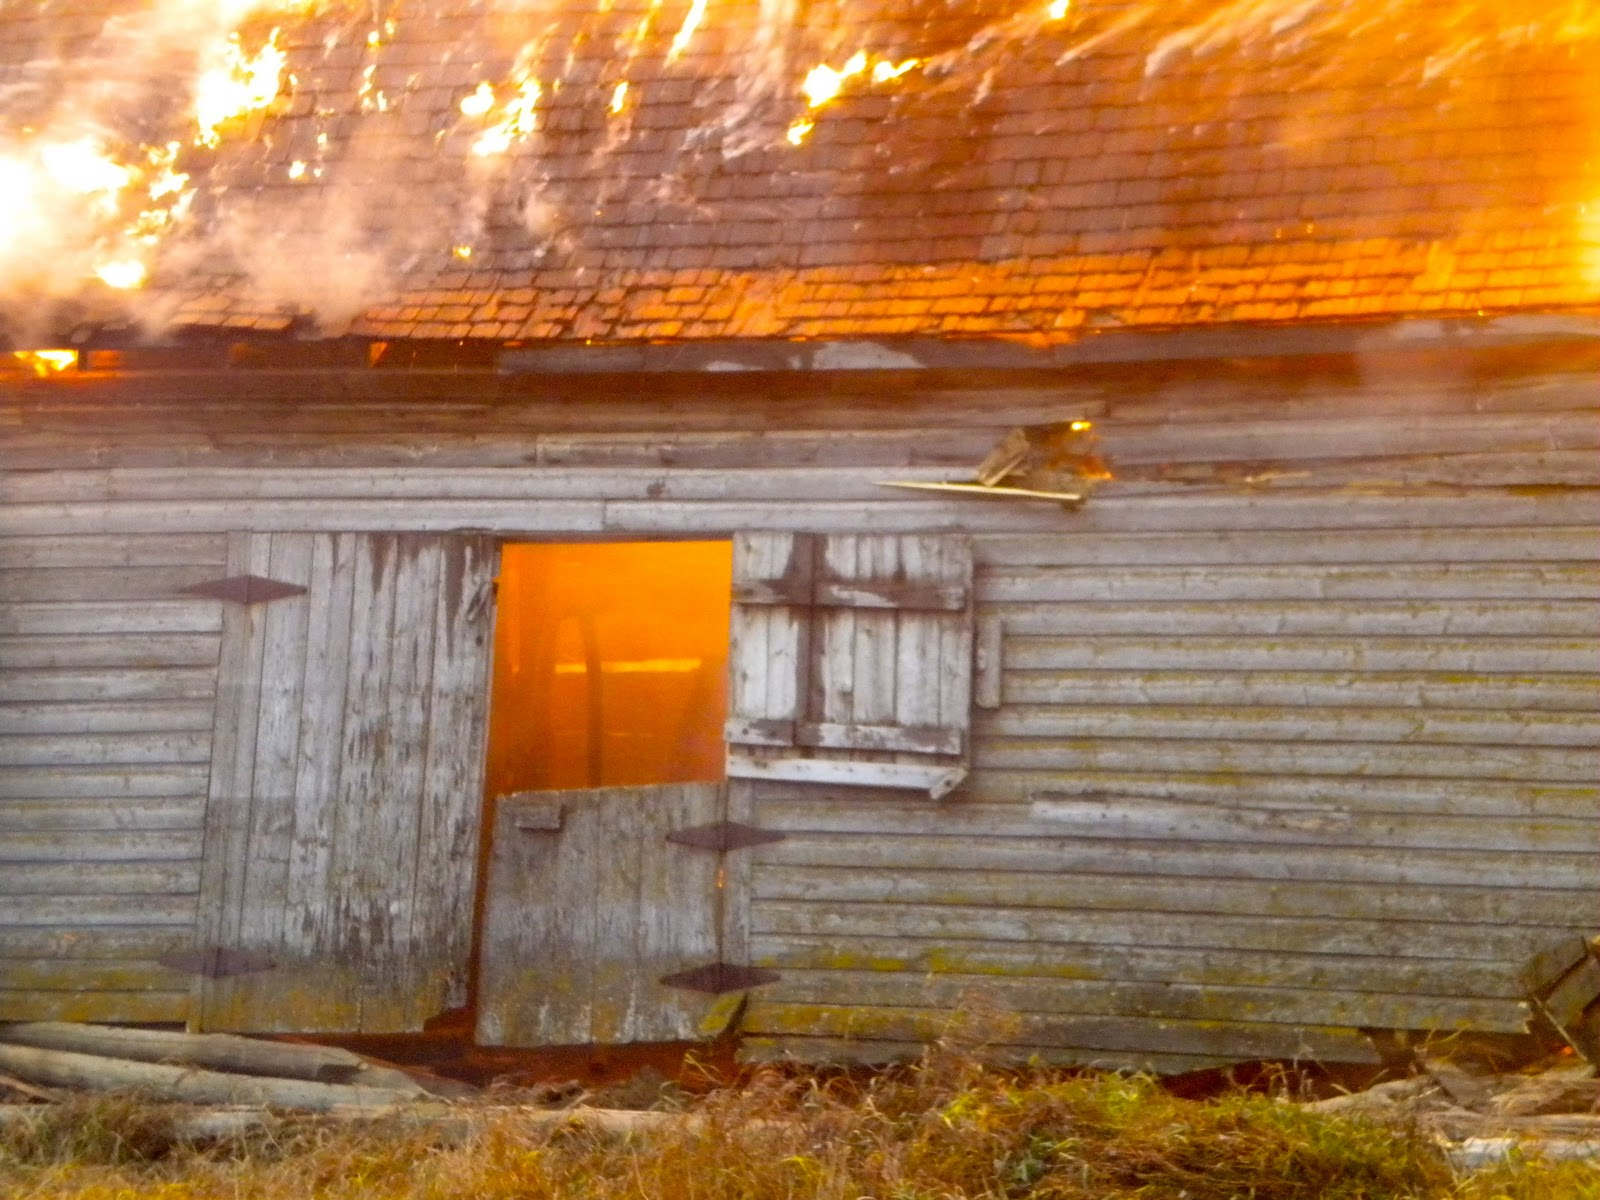 barn burning analysis Buried beneath the stream of consciousness sentence structure in faulkner's barn burning is the story of a boy and the father he both loves and hates.